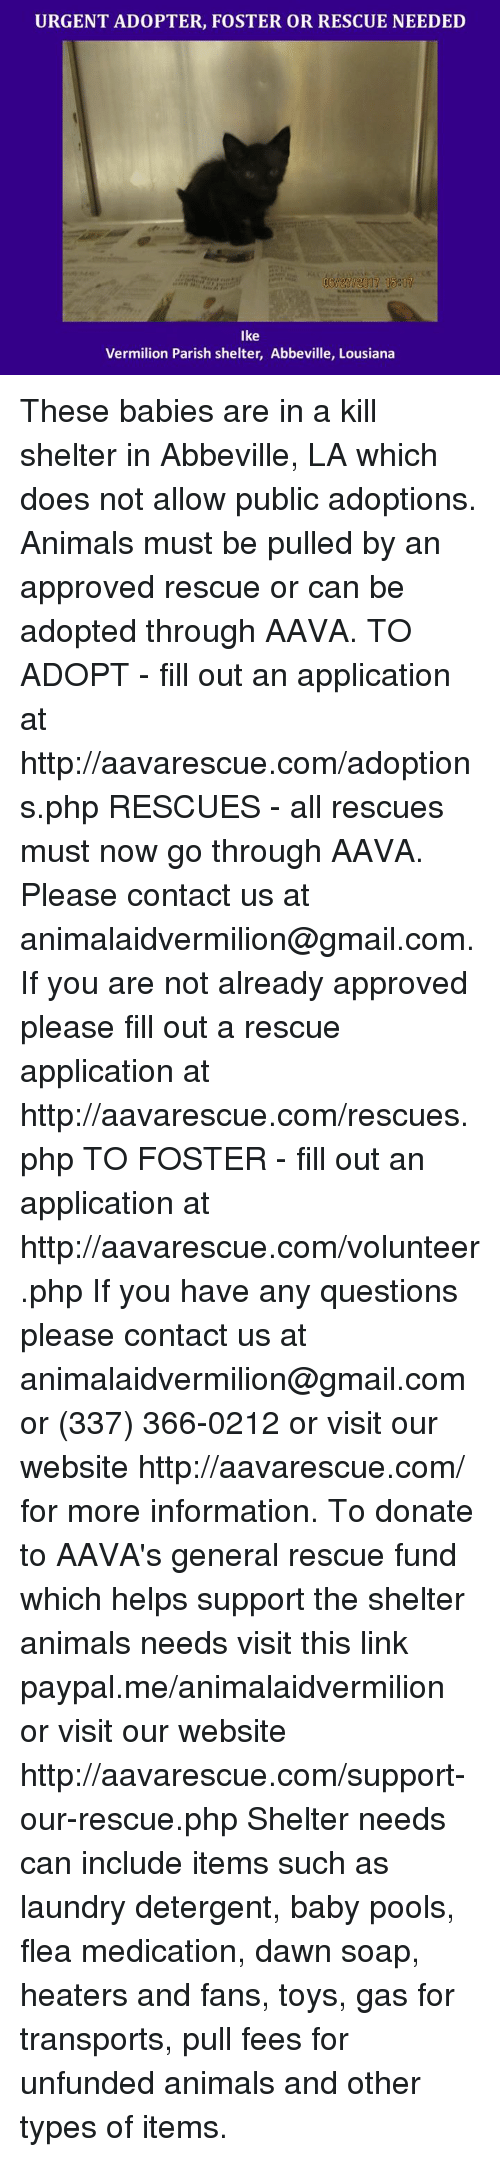 application does not have a main type